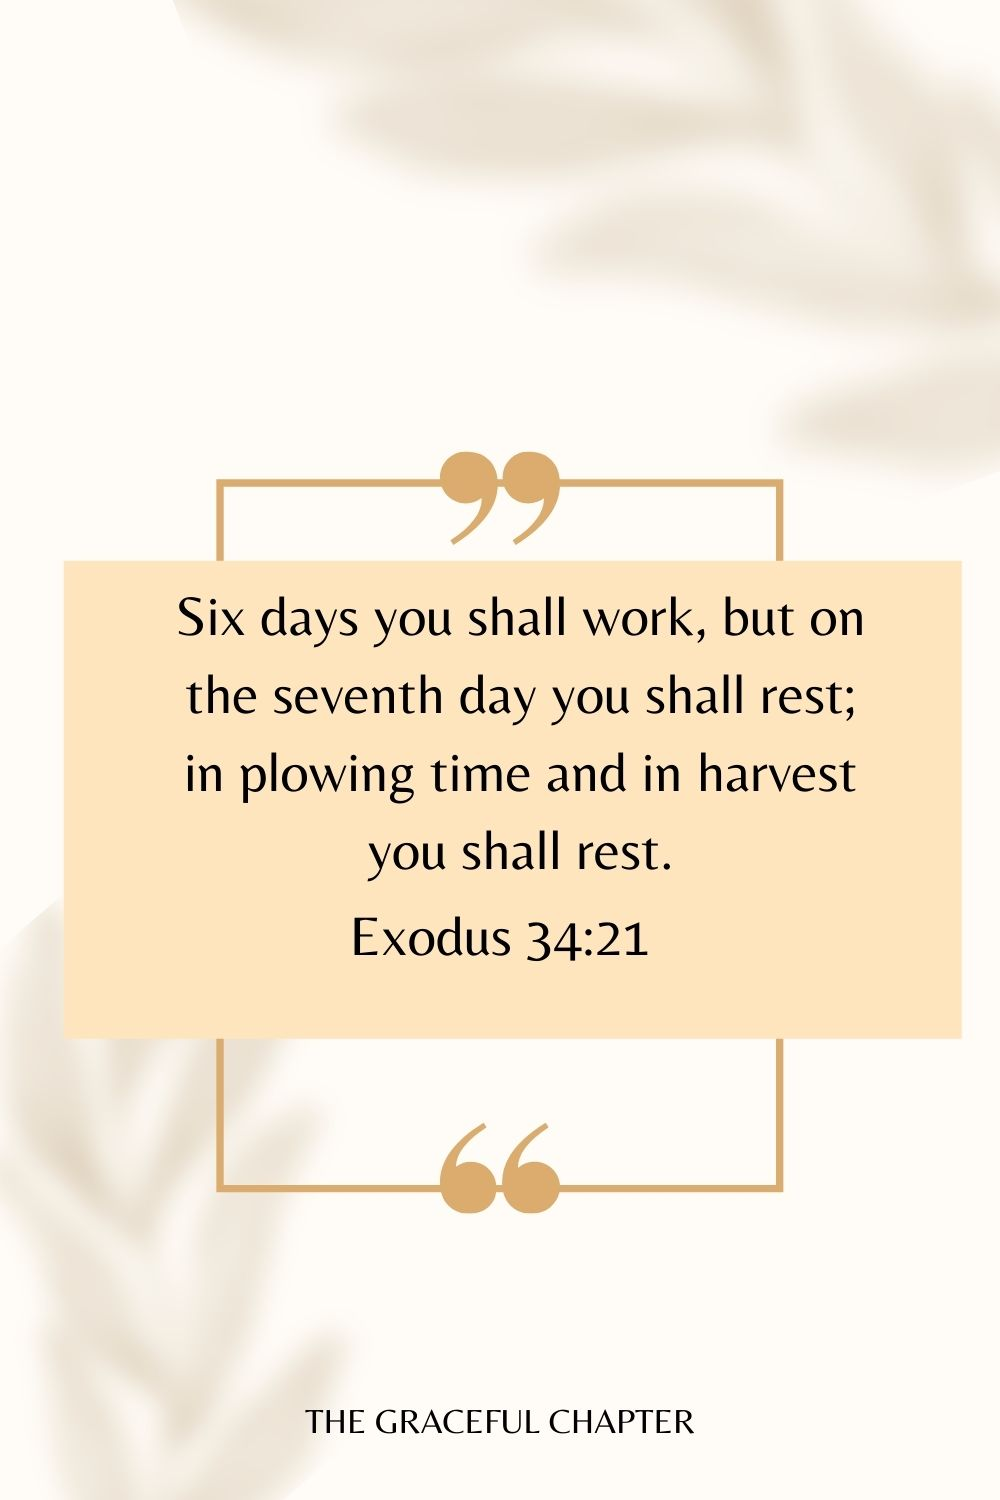 Six days you shall work, but on the seventh day you shall rest; in plowing time and in harvest you shall rest. Exodus 34:21